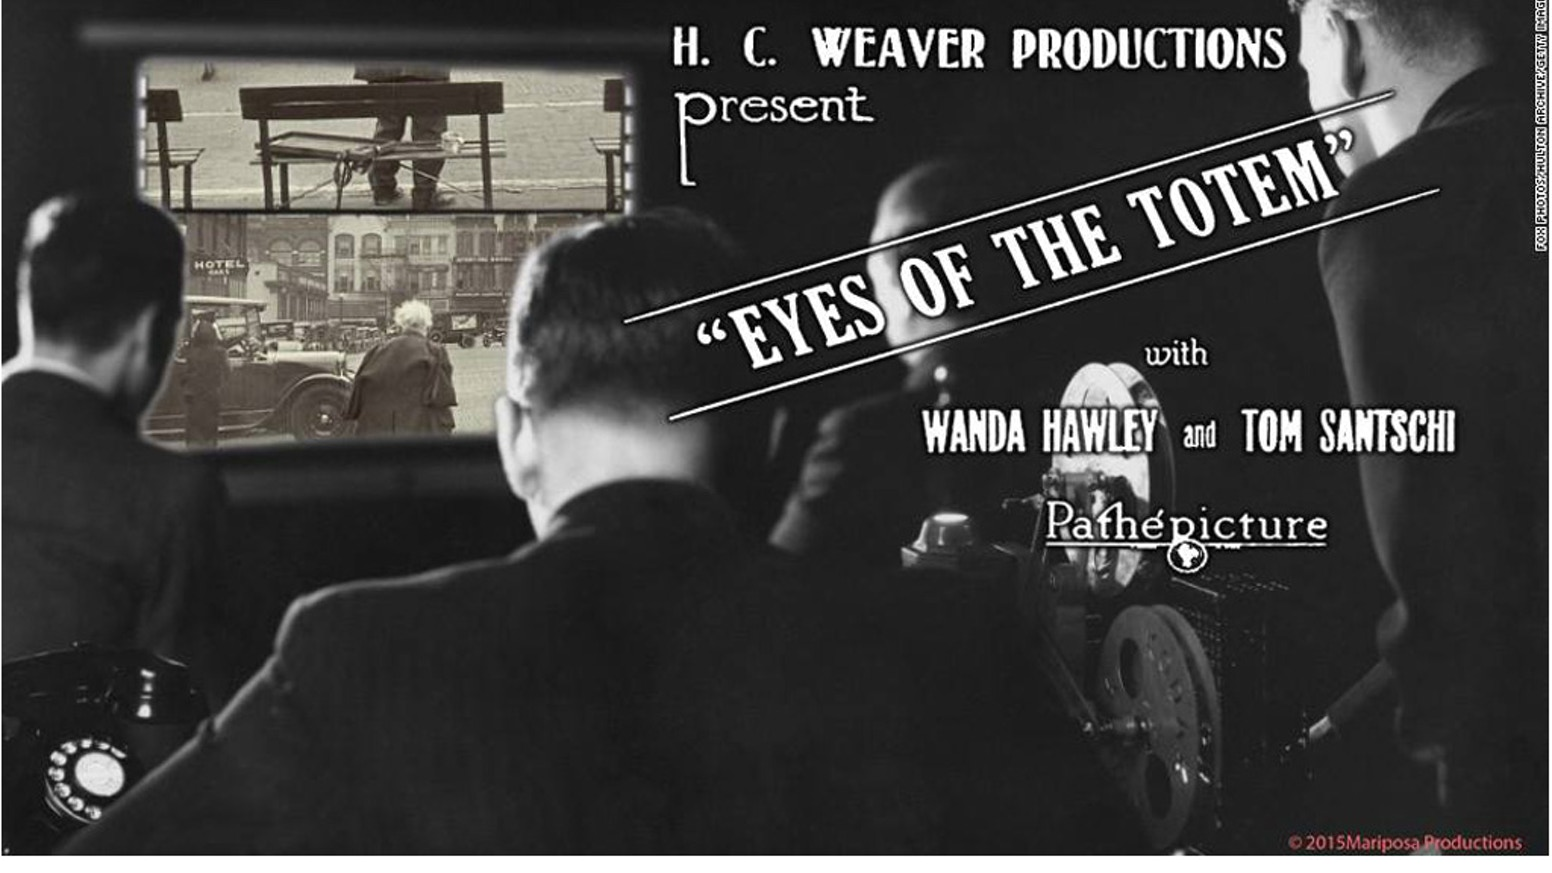 Thank you for helping us re-premiere the long lost 1926 silent film THE EYES OF THE TOTEM made by HC Weaver Productions in Tacoma. The re-premiere will be on September 18th, 2015, at the Rialto Theater in Tacoma.